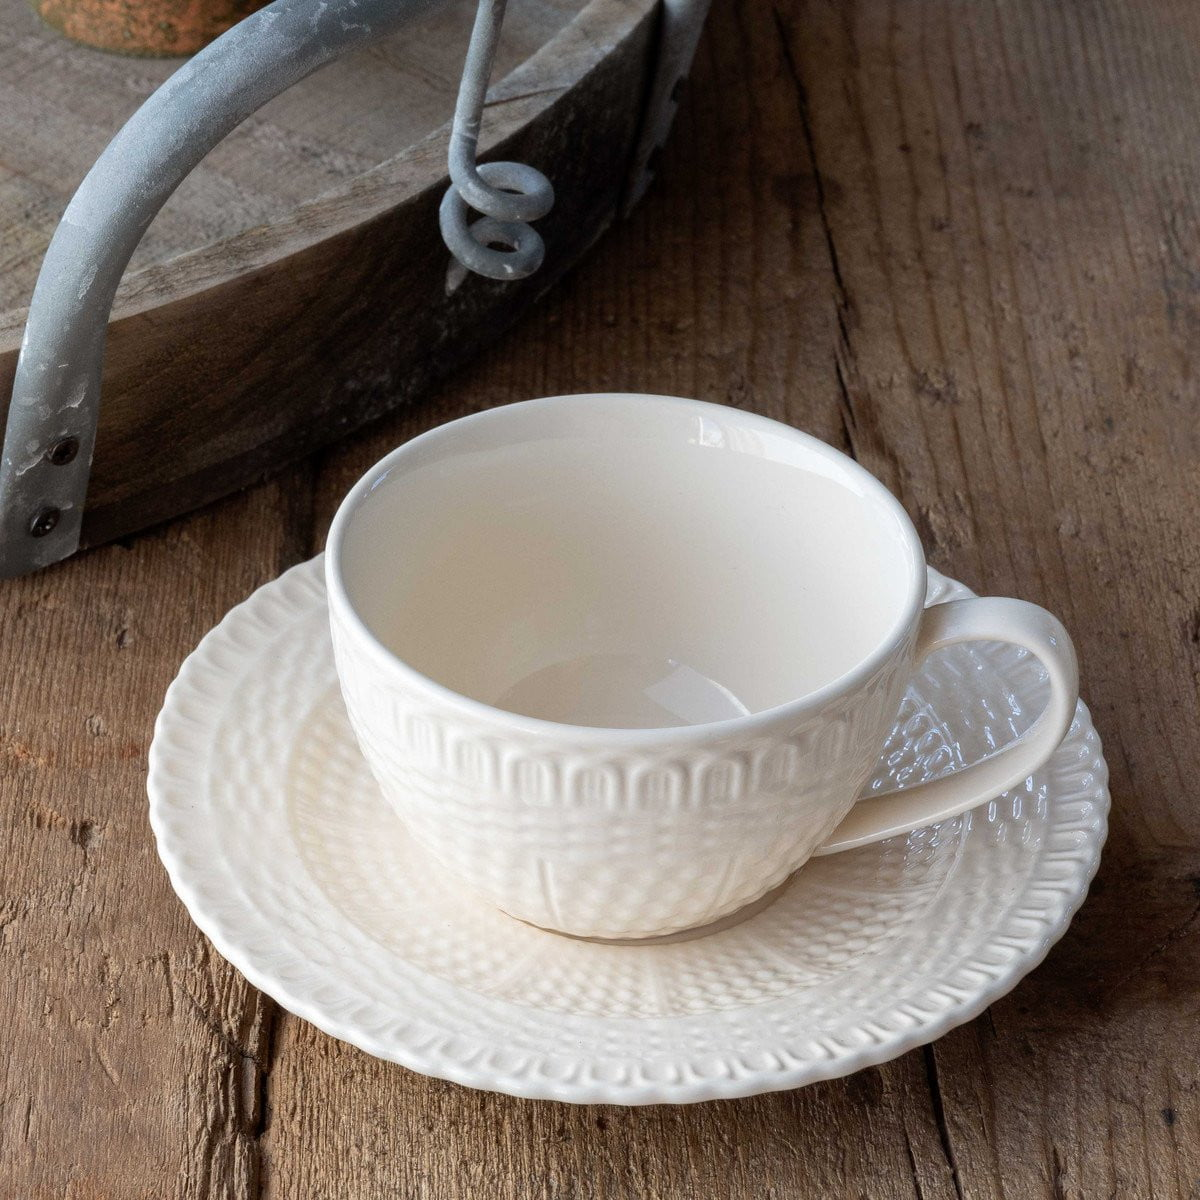 Set of 4 Creamware Basketweave Cups & Saucers - The Reclaimed Farmhouse